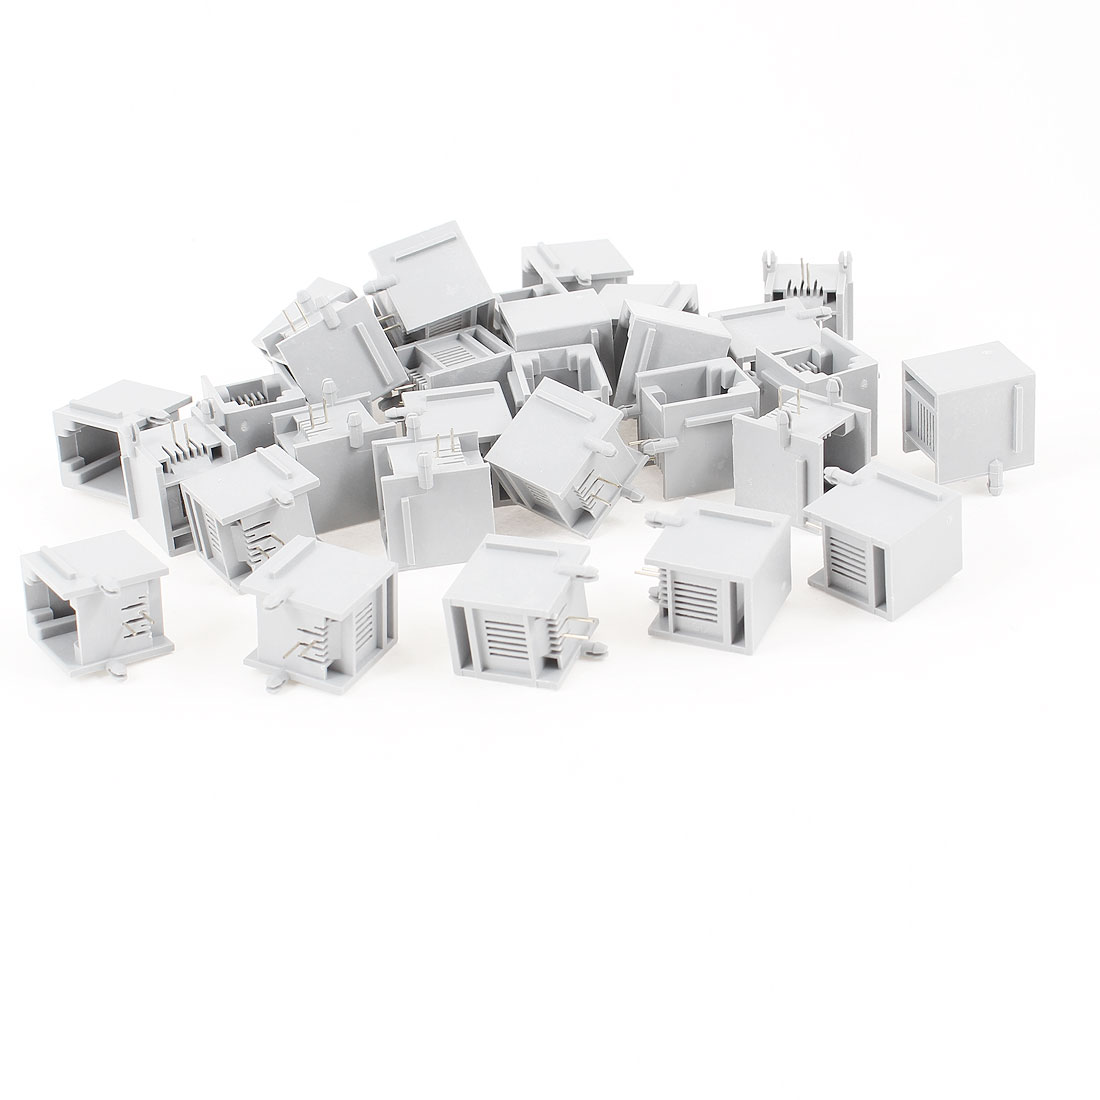 30 Pcs Gray Plastic Unshielded RJ11 6P2C Network Modular PCB Connector Jacks